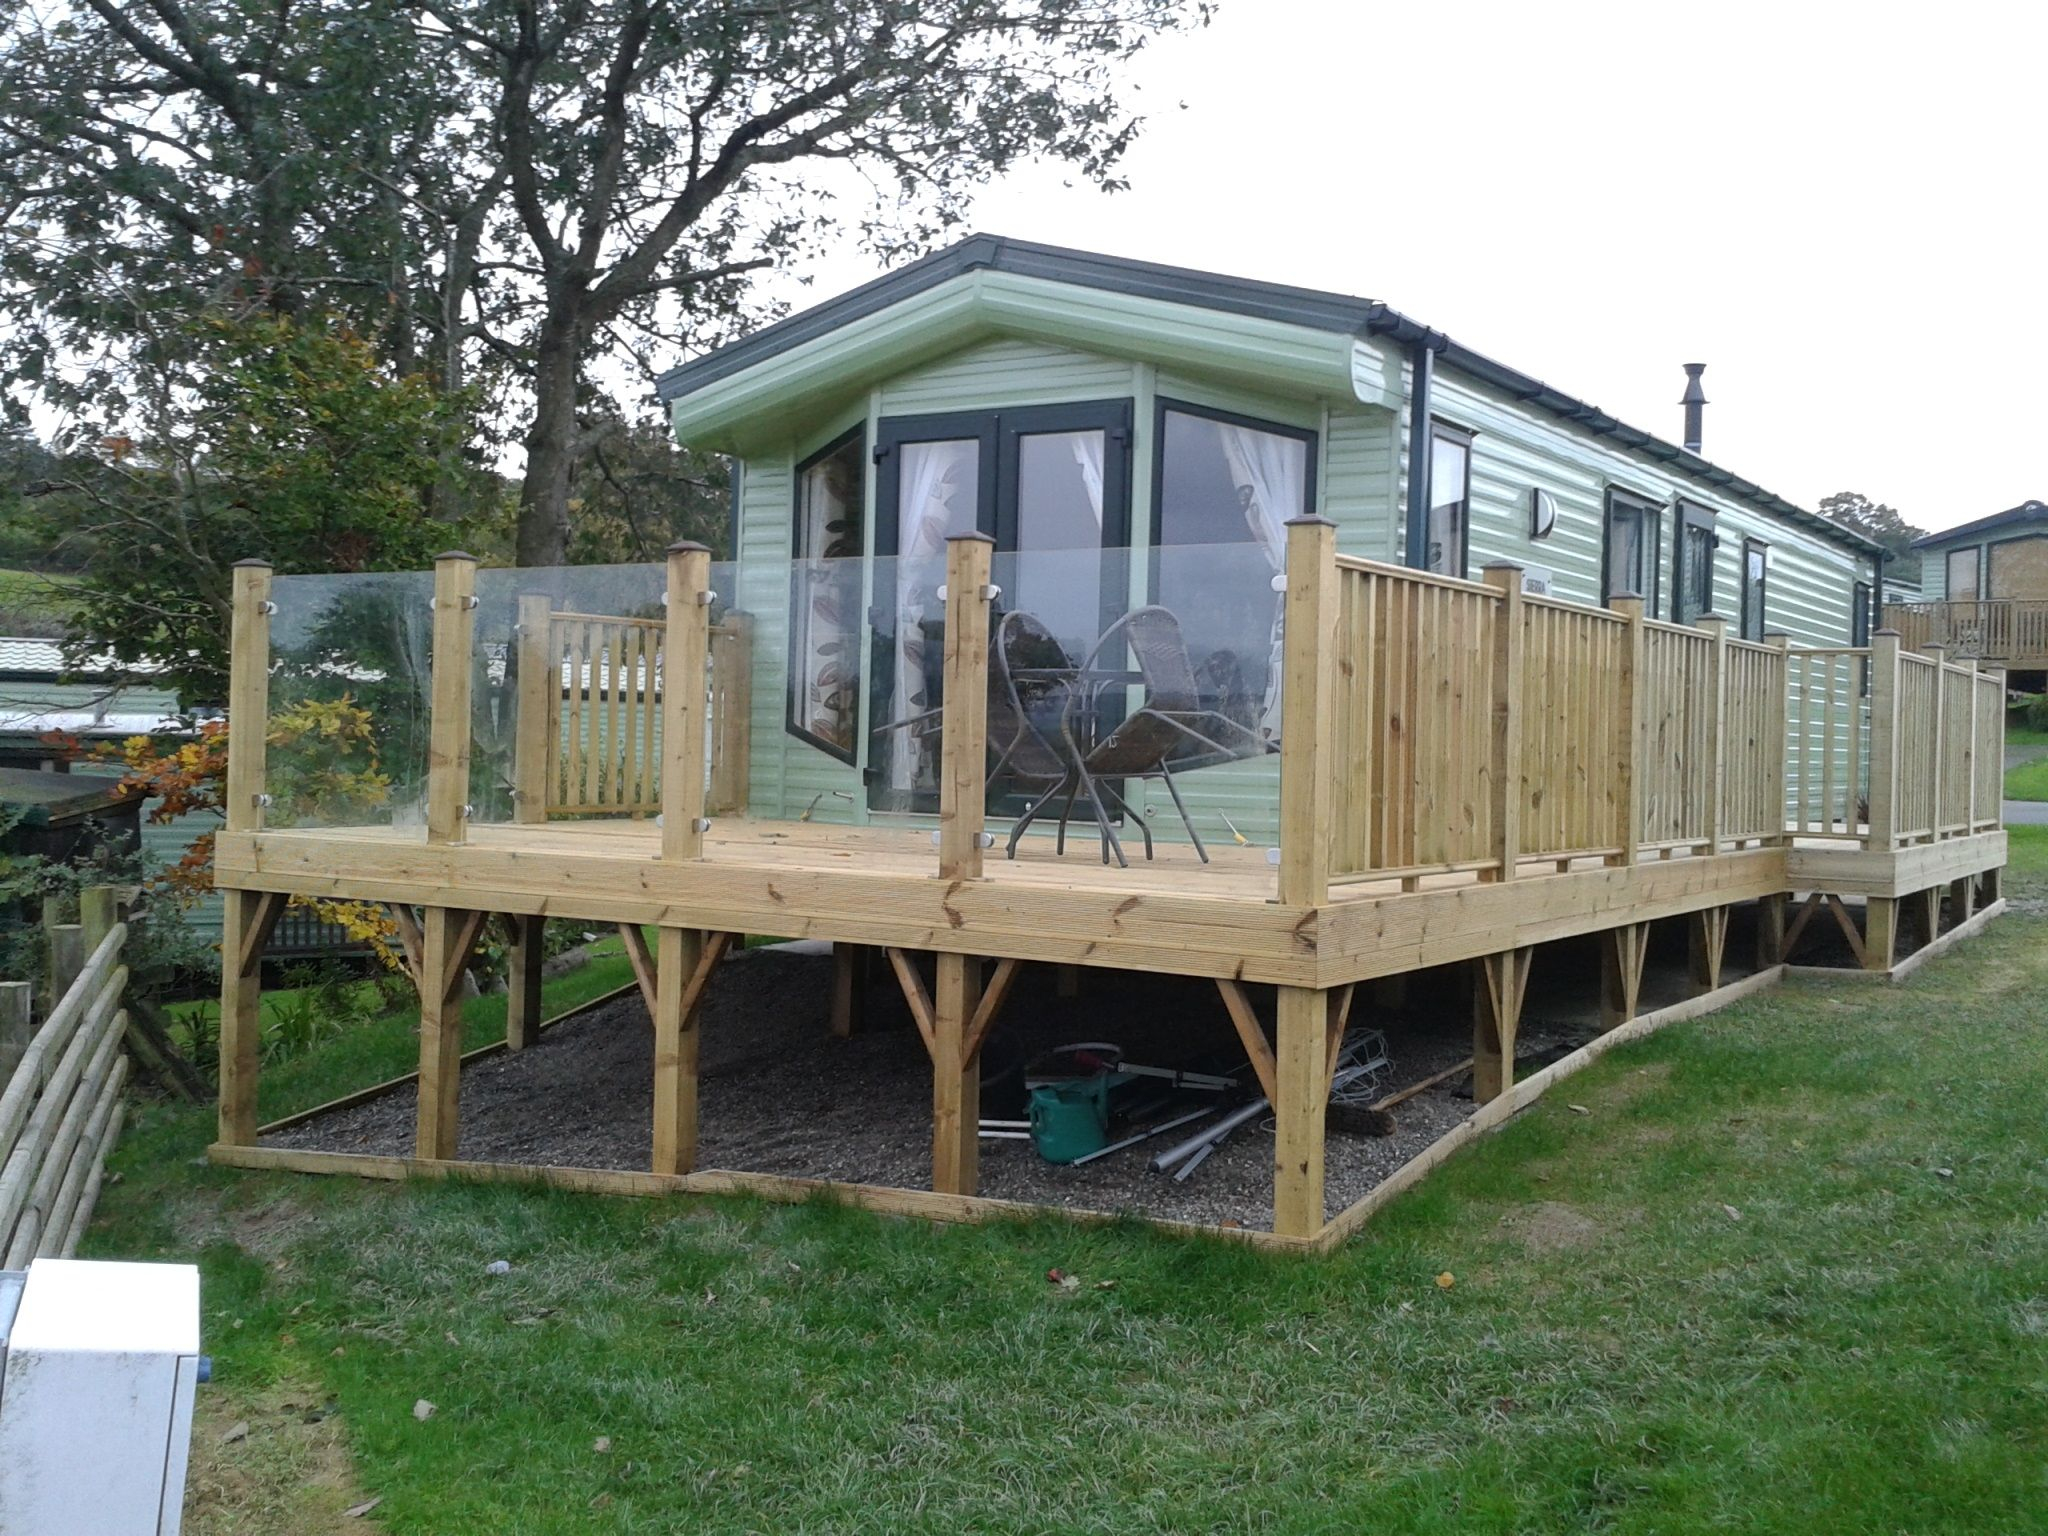 Caravan Park Glass Panels For Decking Balustrades And Patios with regard to dimensions 2048 X 1536